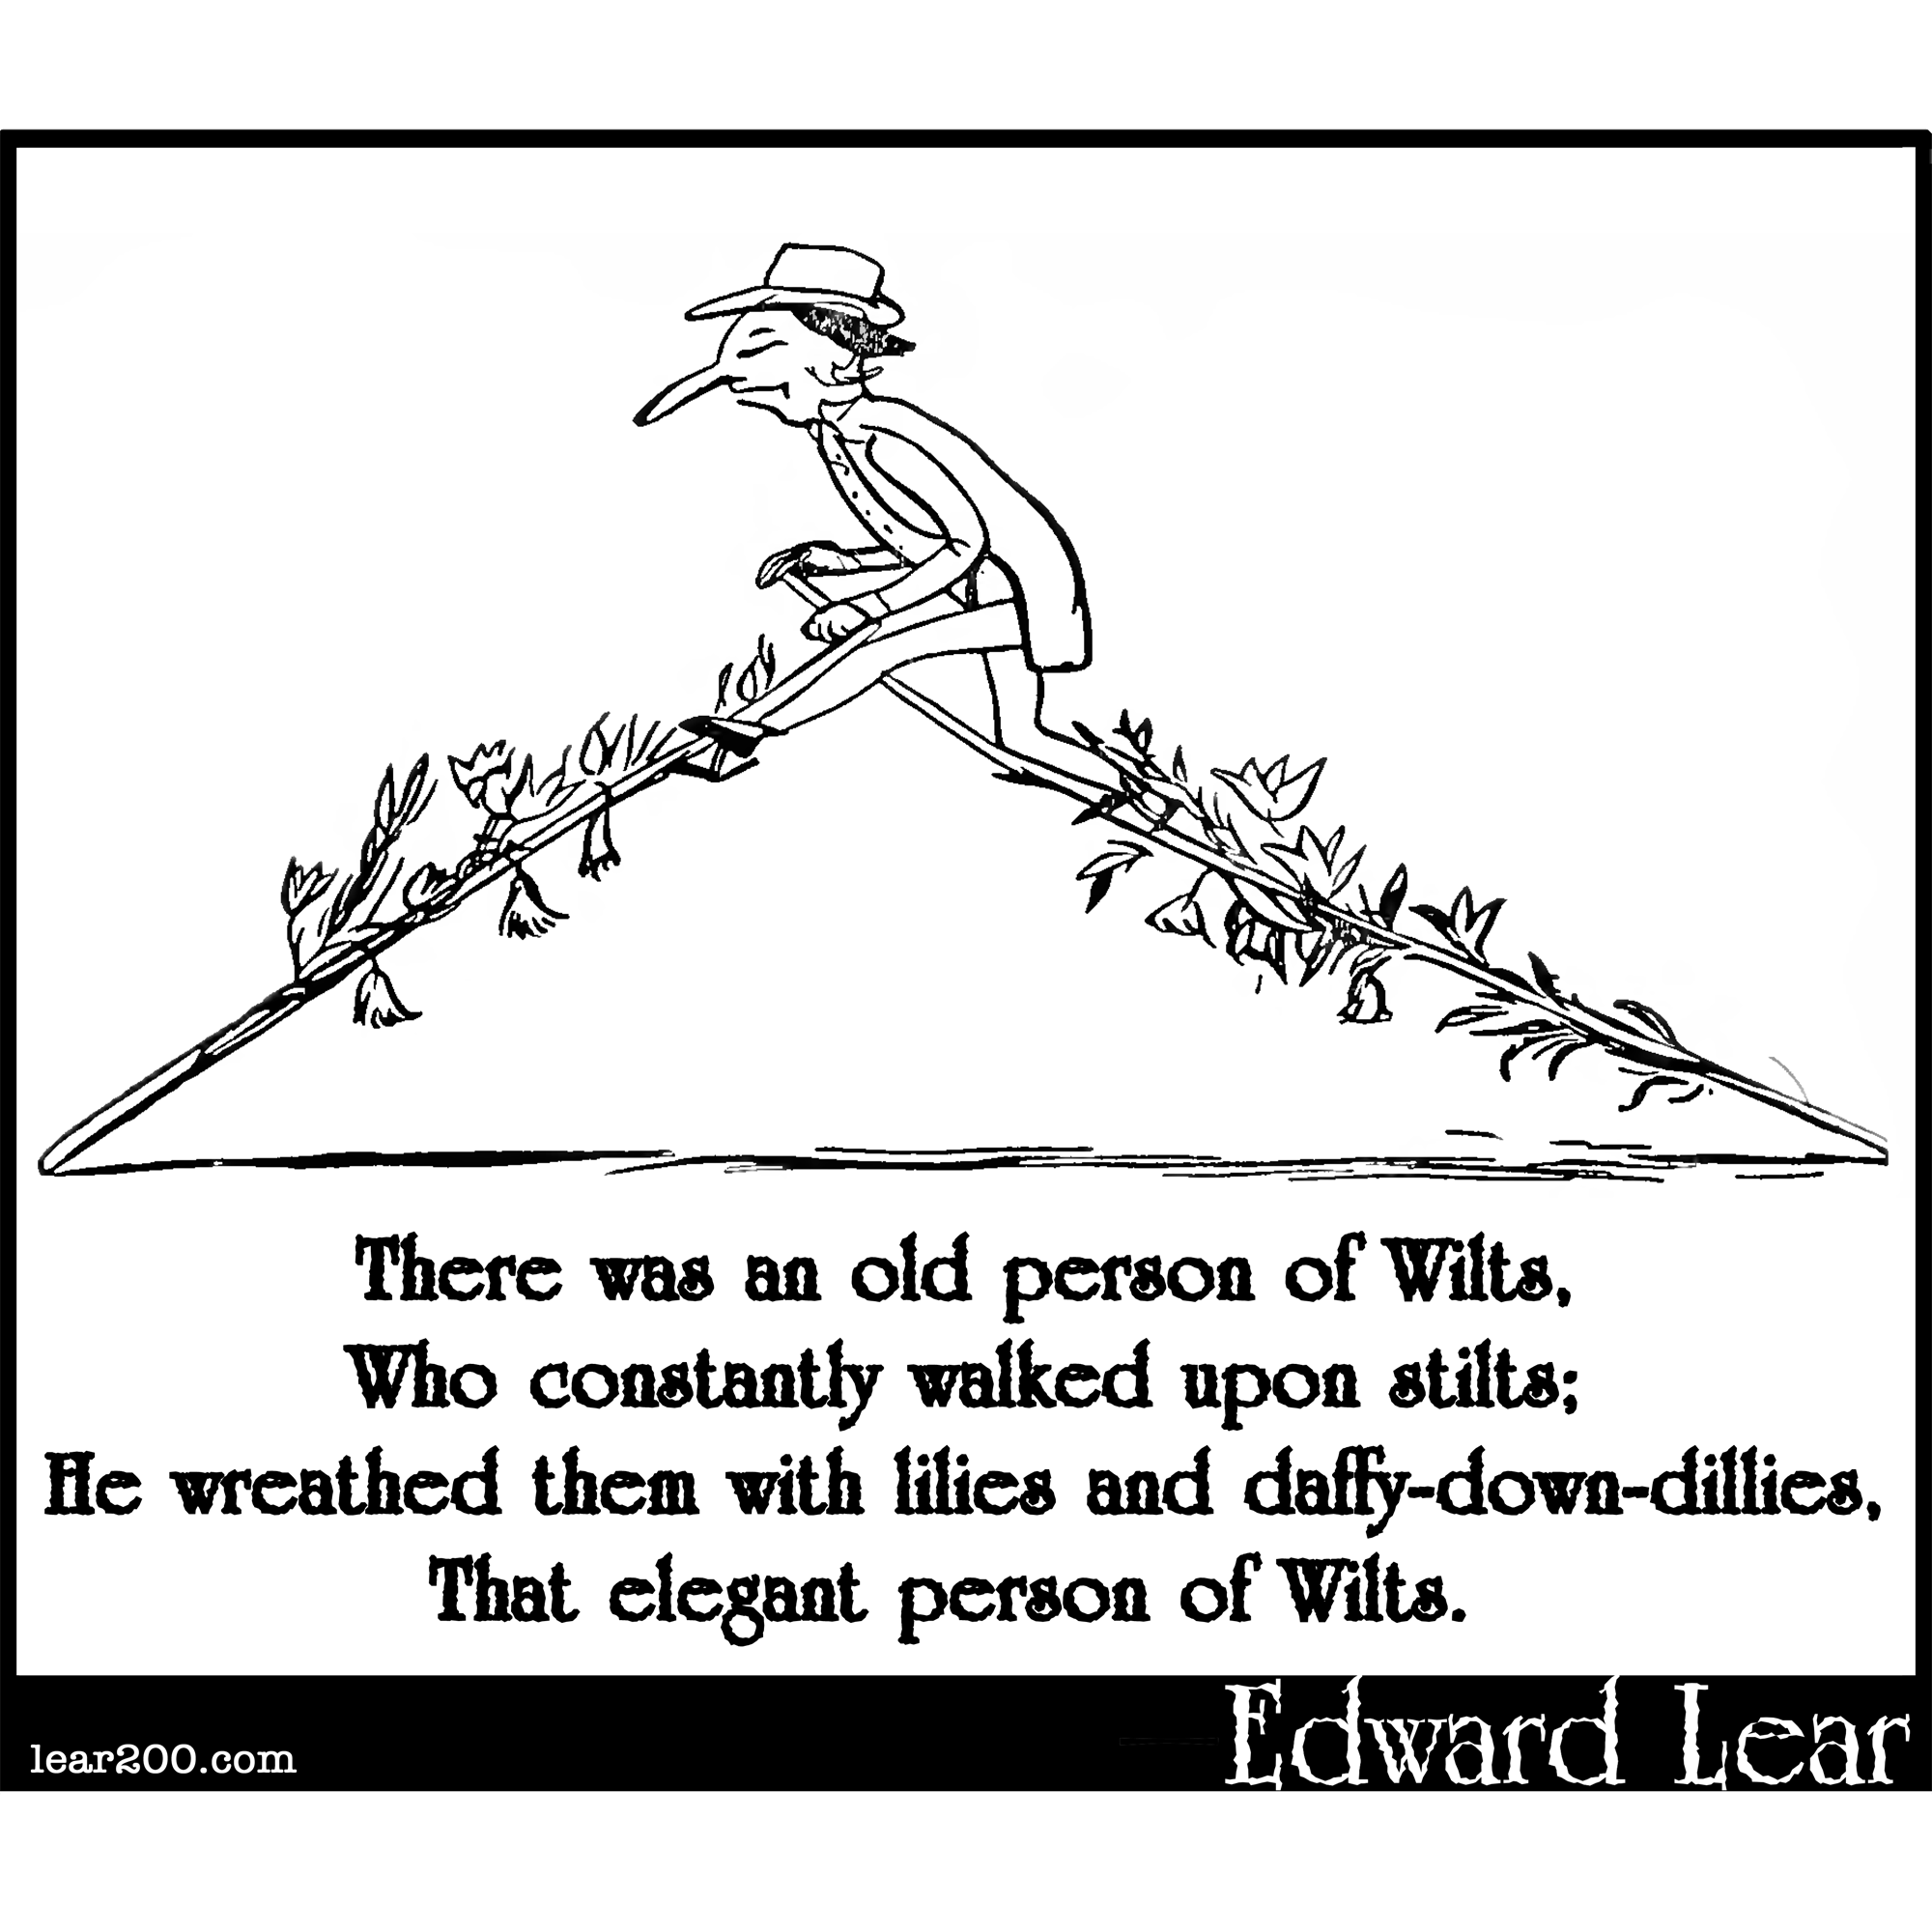 There was an old person of Wilts